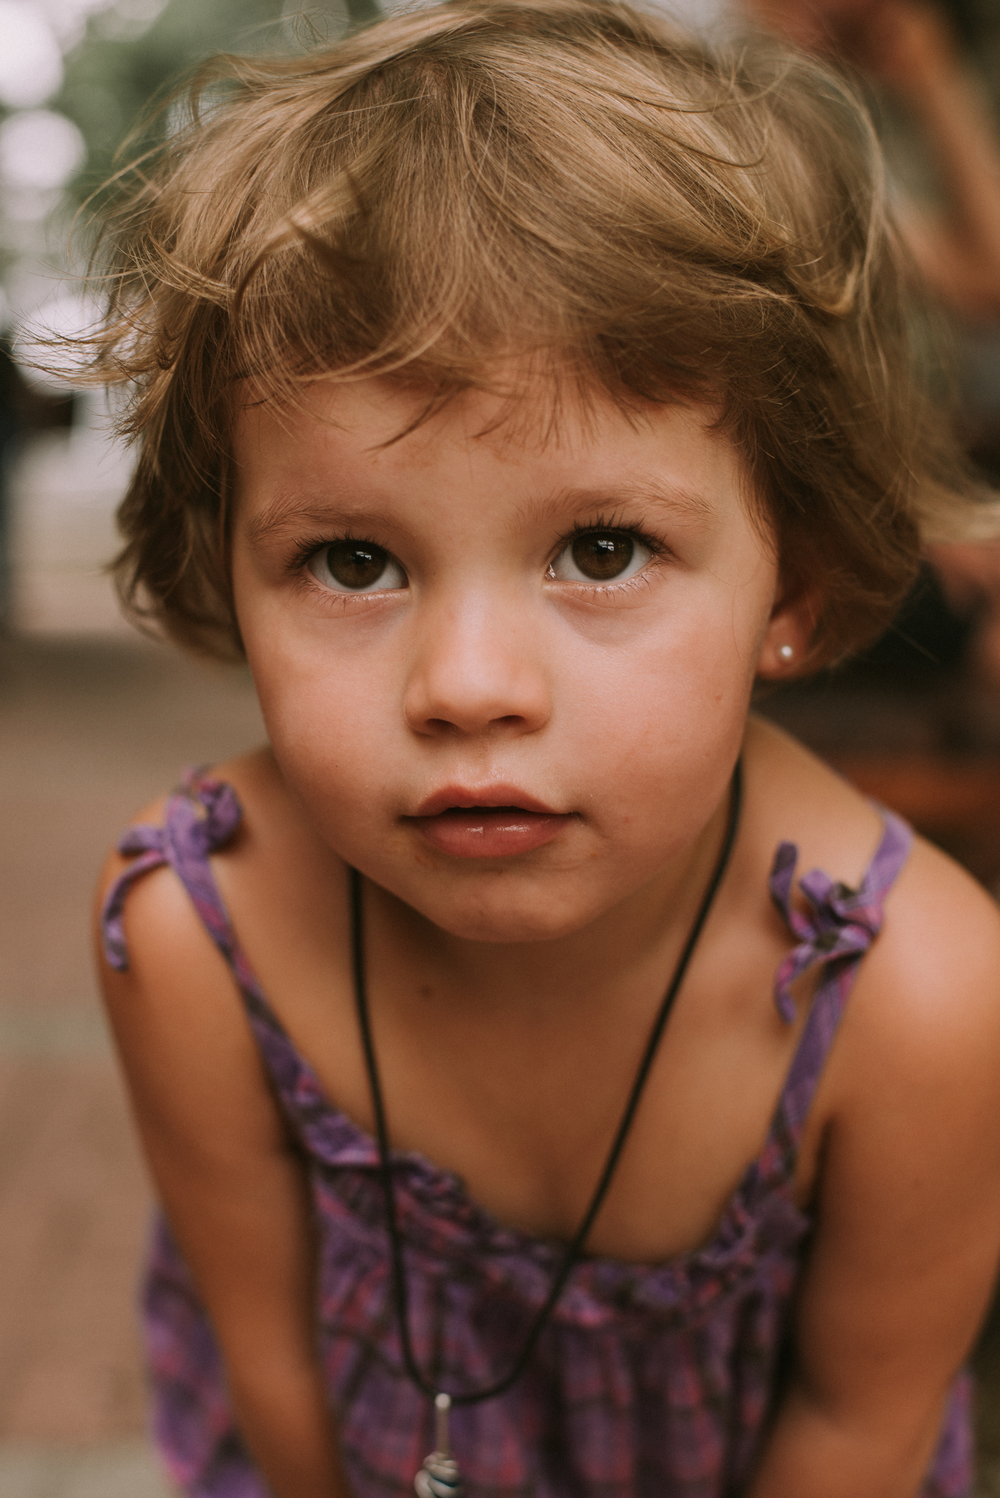 Little girl looking into camera food and thought naples florida portrait photographer collier county